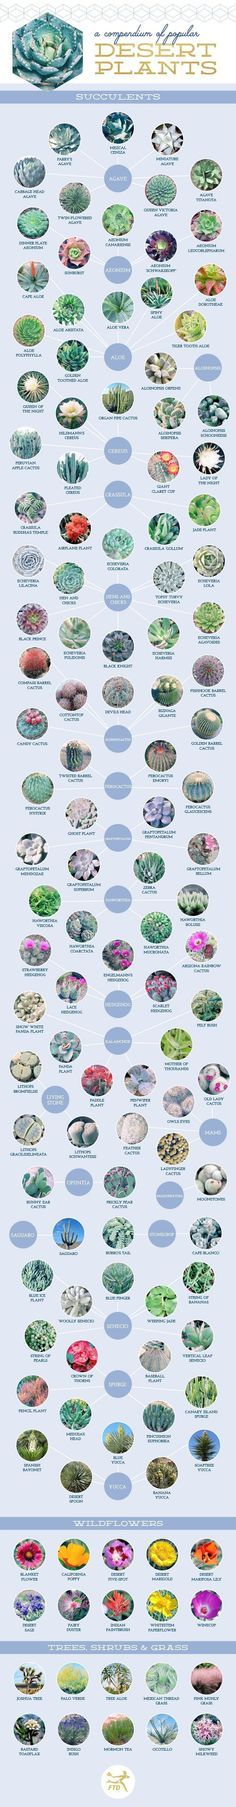 Don't know the name of your succulent or cactus plant? This great Compendium of 127 Stunning Desert Plants and Succulents may help. Image shared with permission of ftd.com. For help on propagating succulents please visit http://thegardeningcook.com